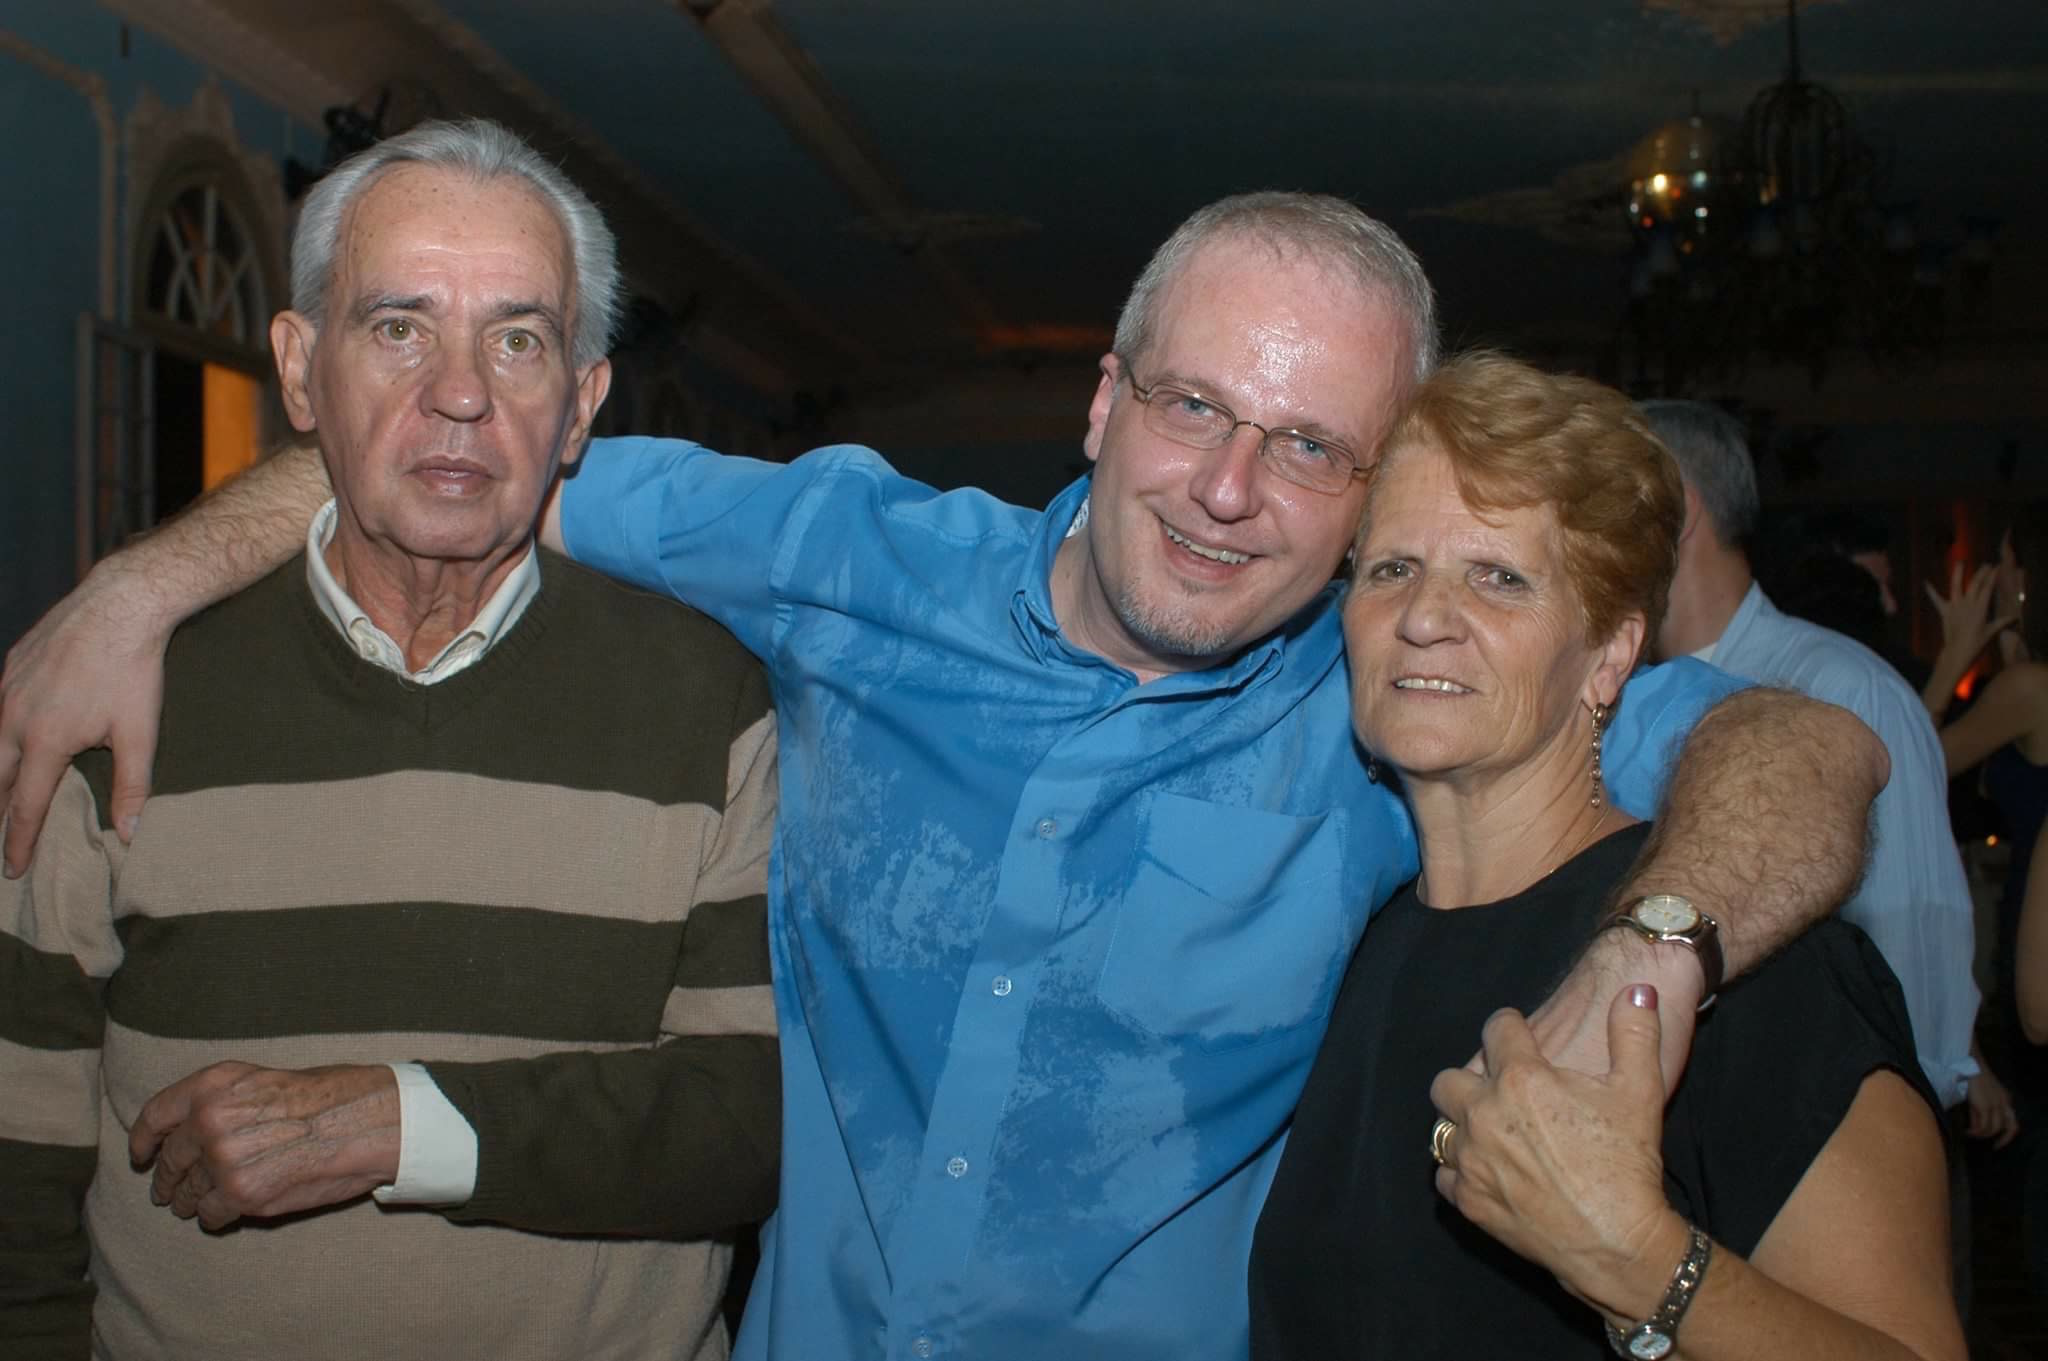 Jorge with his father , Roberto and the mother , Dirce